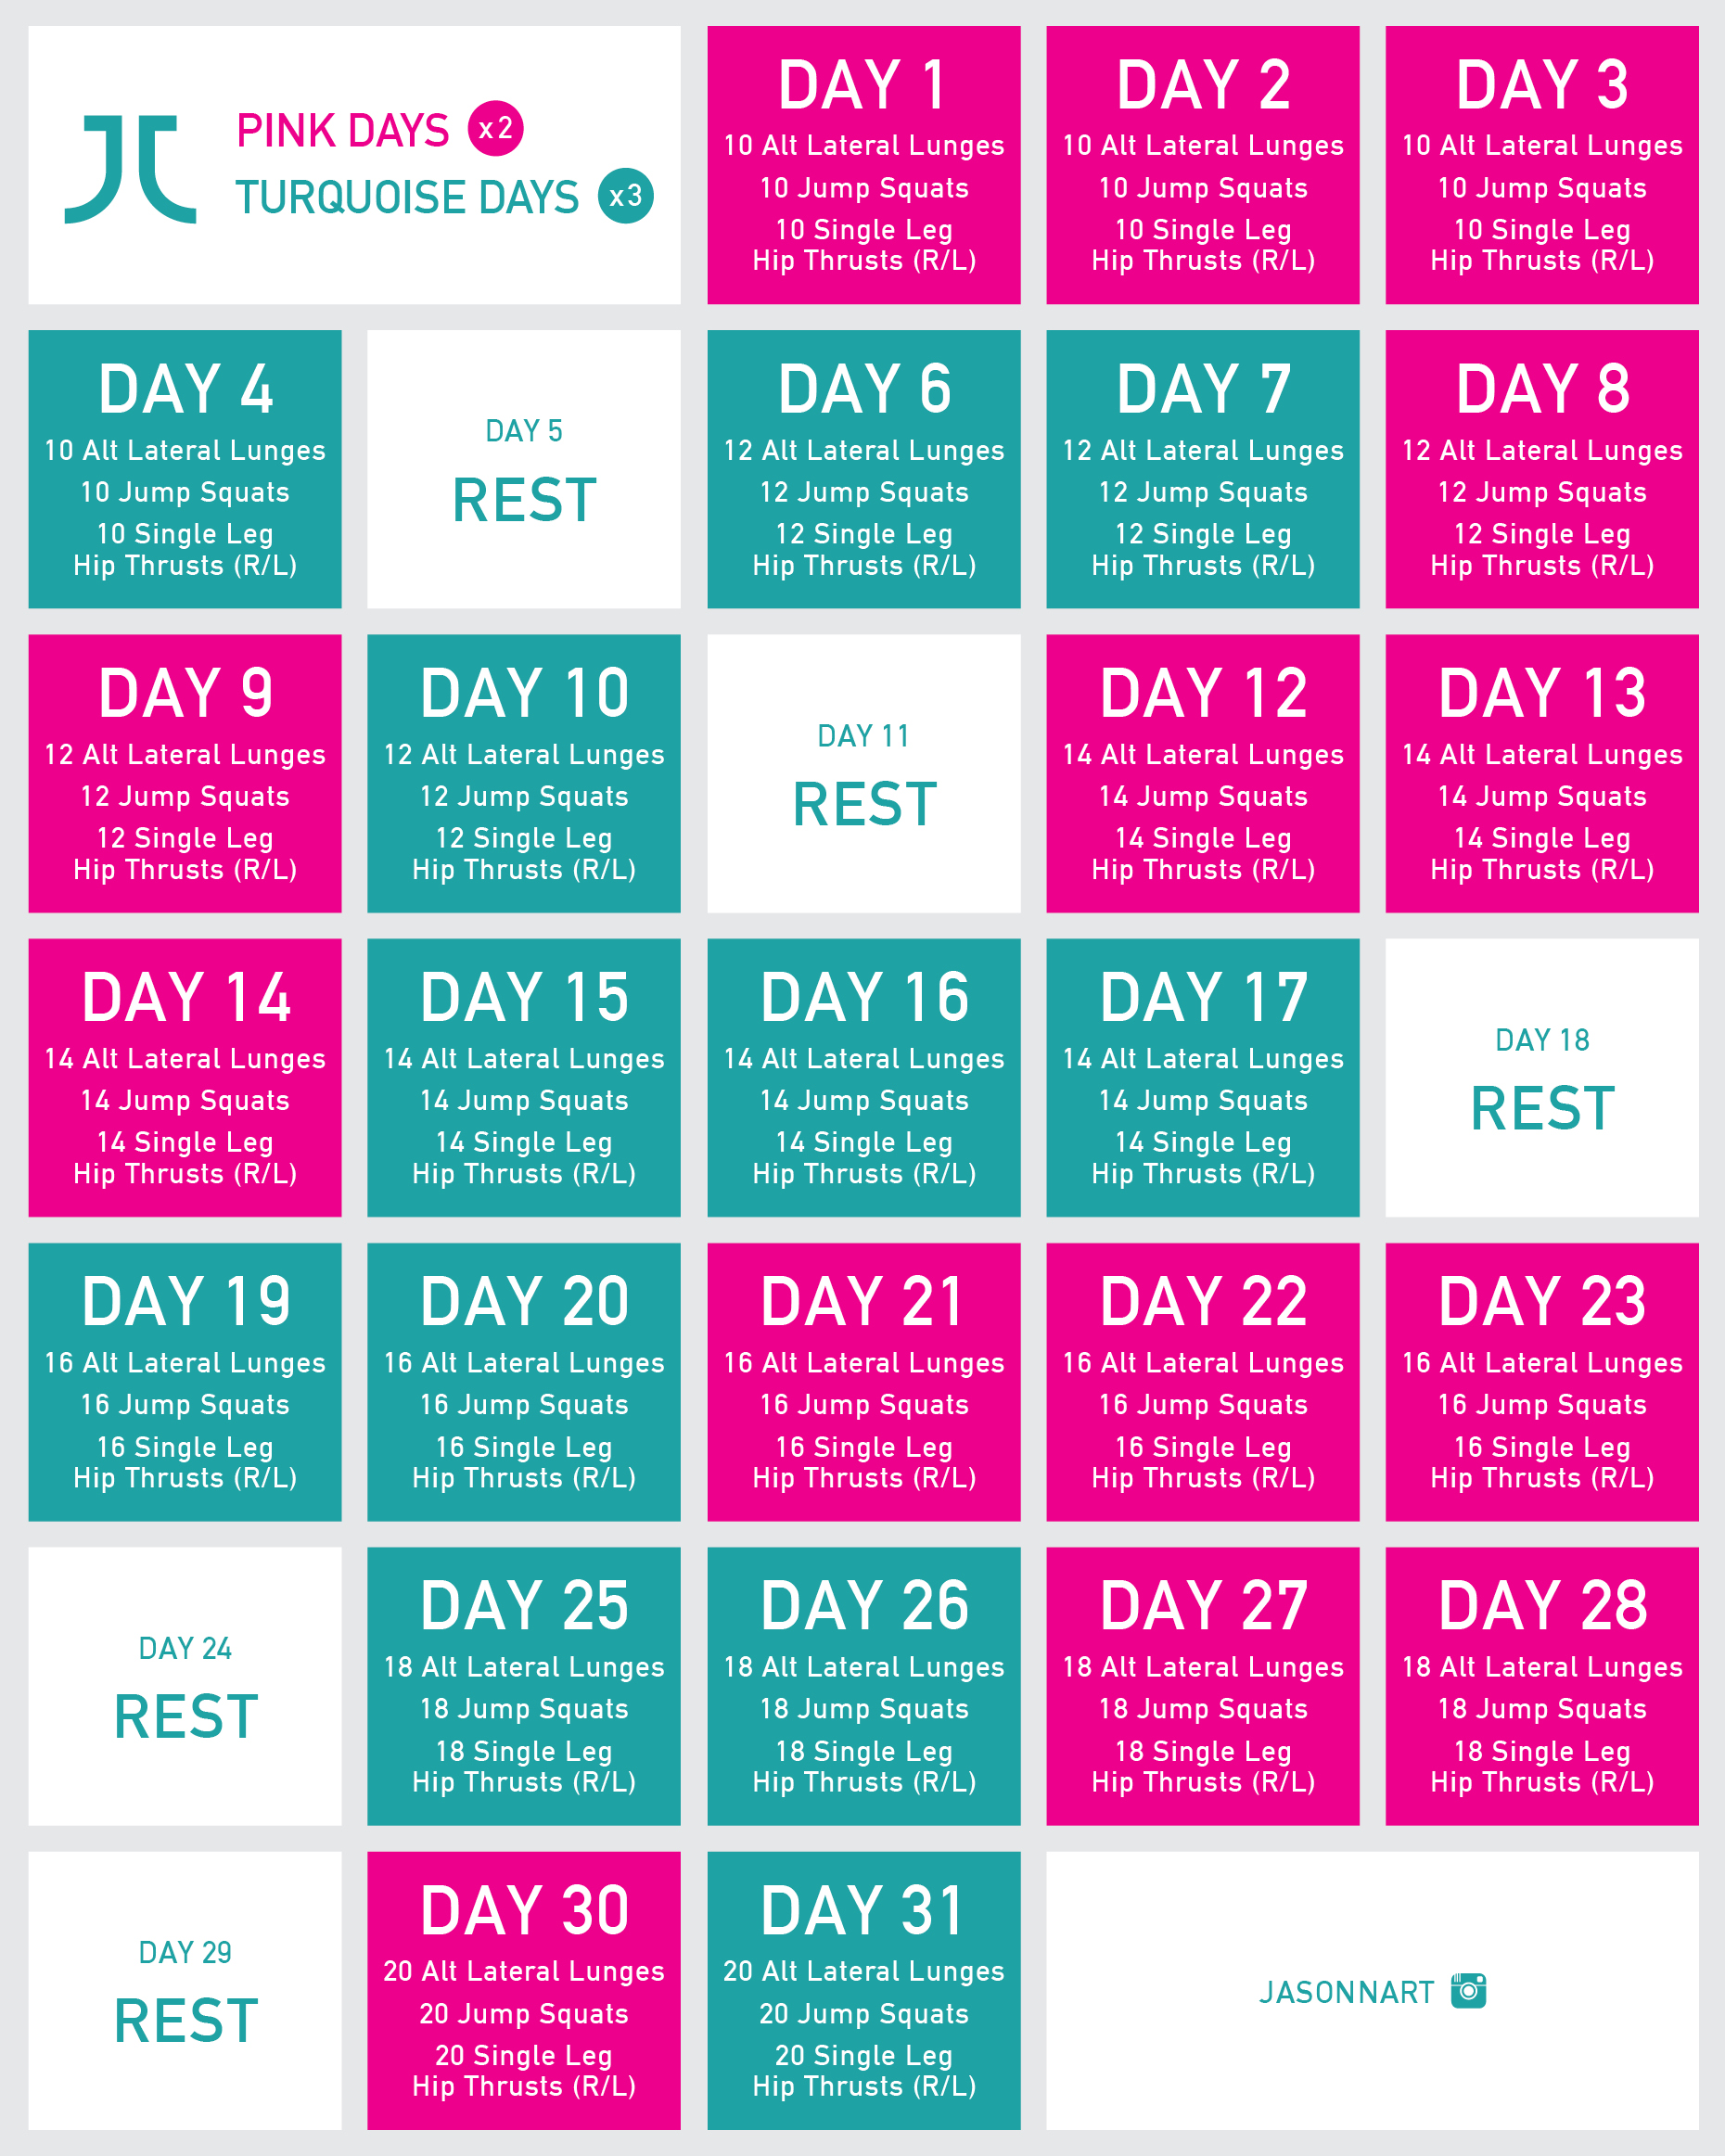 30 Day Lower Body Challenge - Elite Daily  Image by: Lesley Hartman